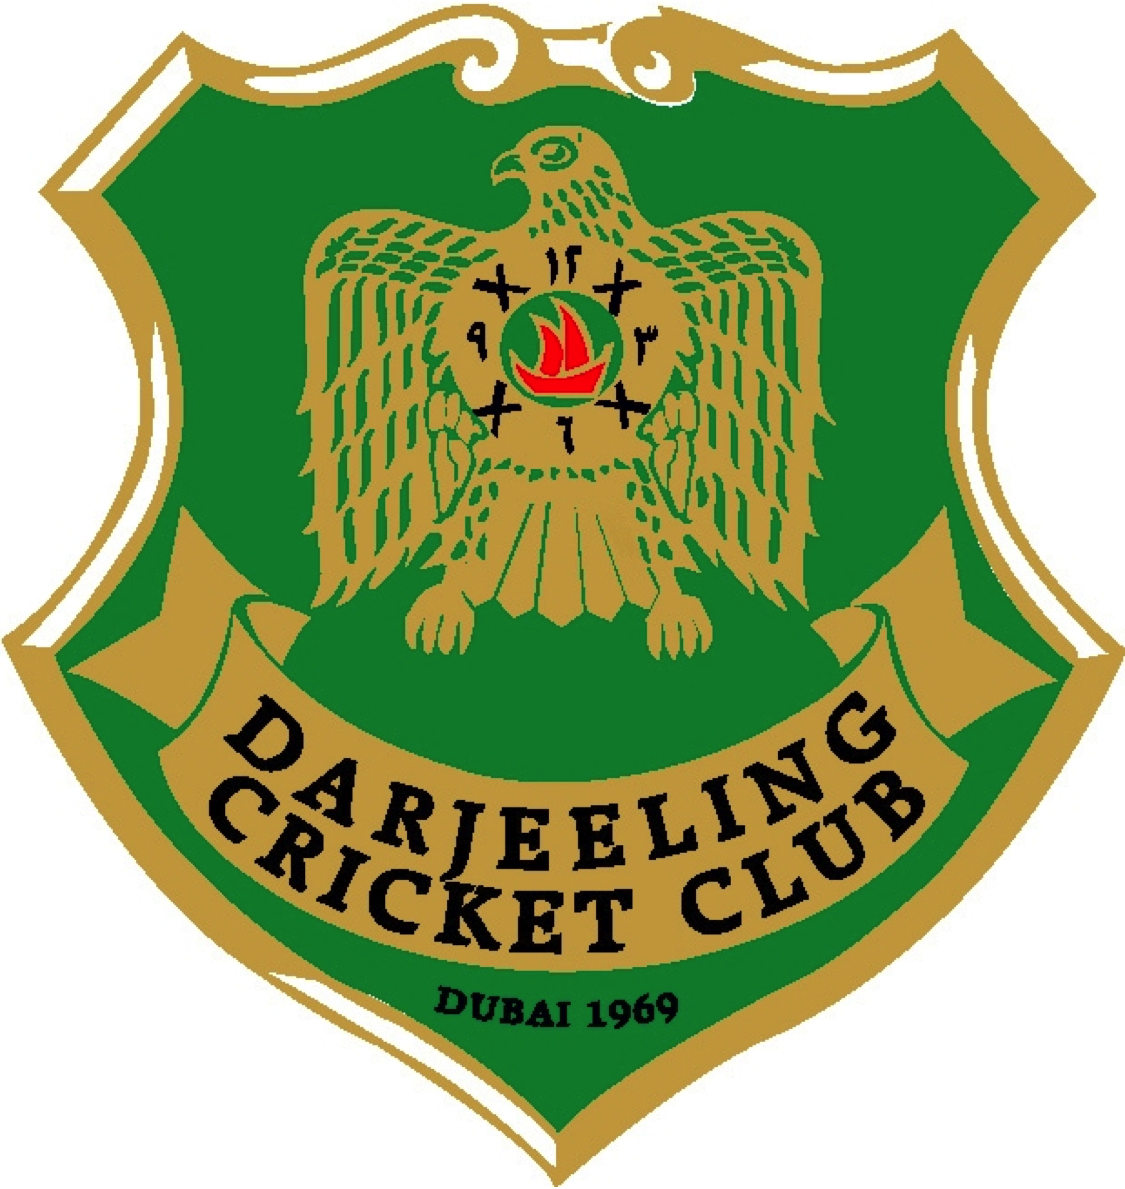 Darjeeling Cricket Club